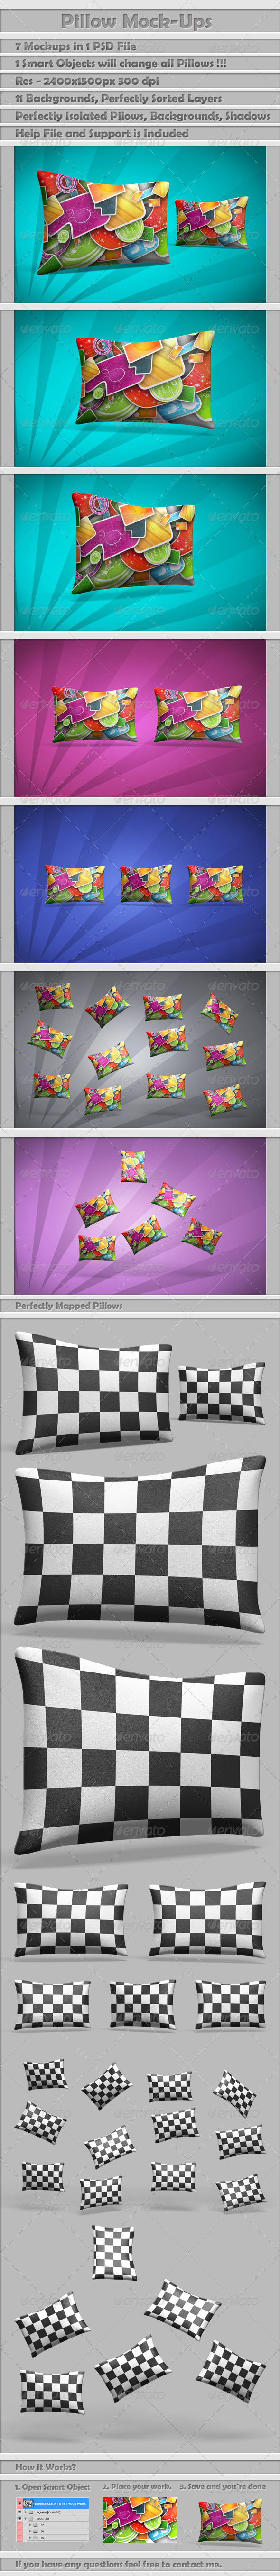 Pillow Mock-Ups - Miscellaneous Product Mock-Ups